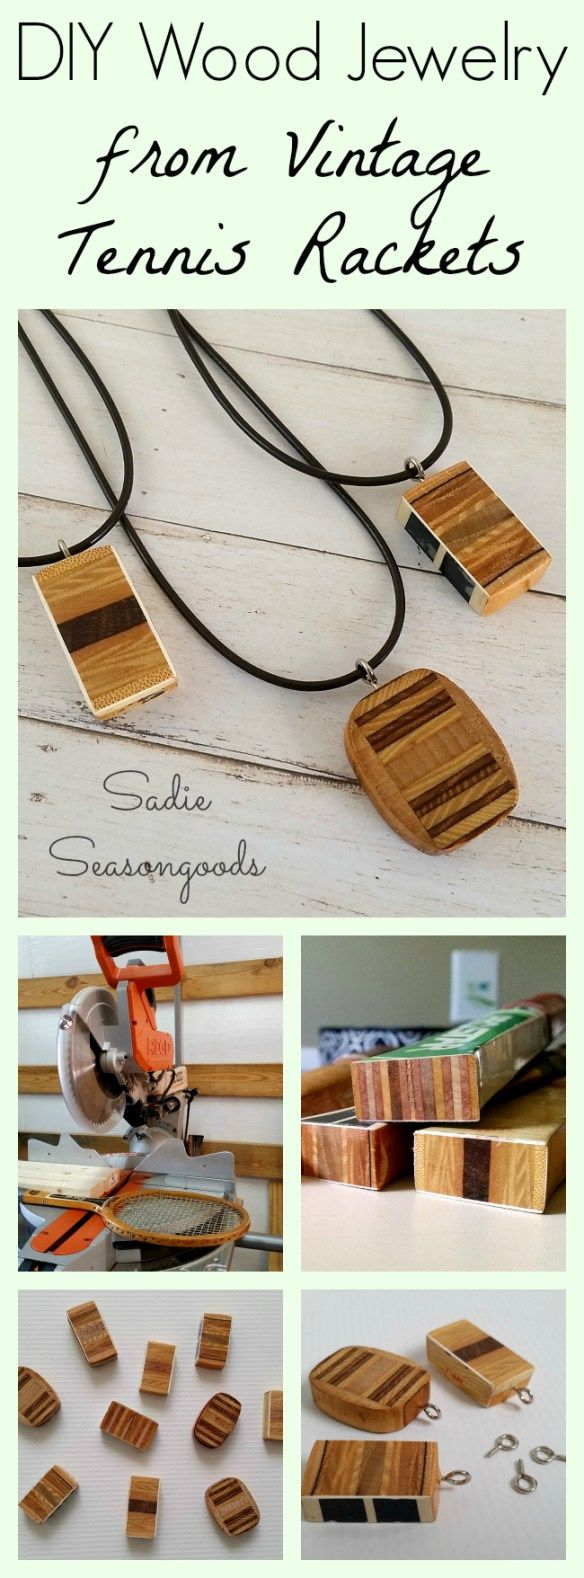 143 Best Wooden Jewelry Images On Pinterest Wooden